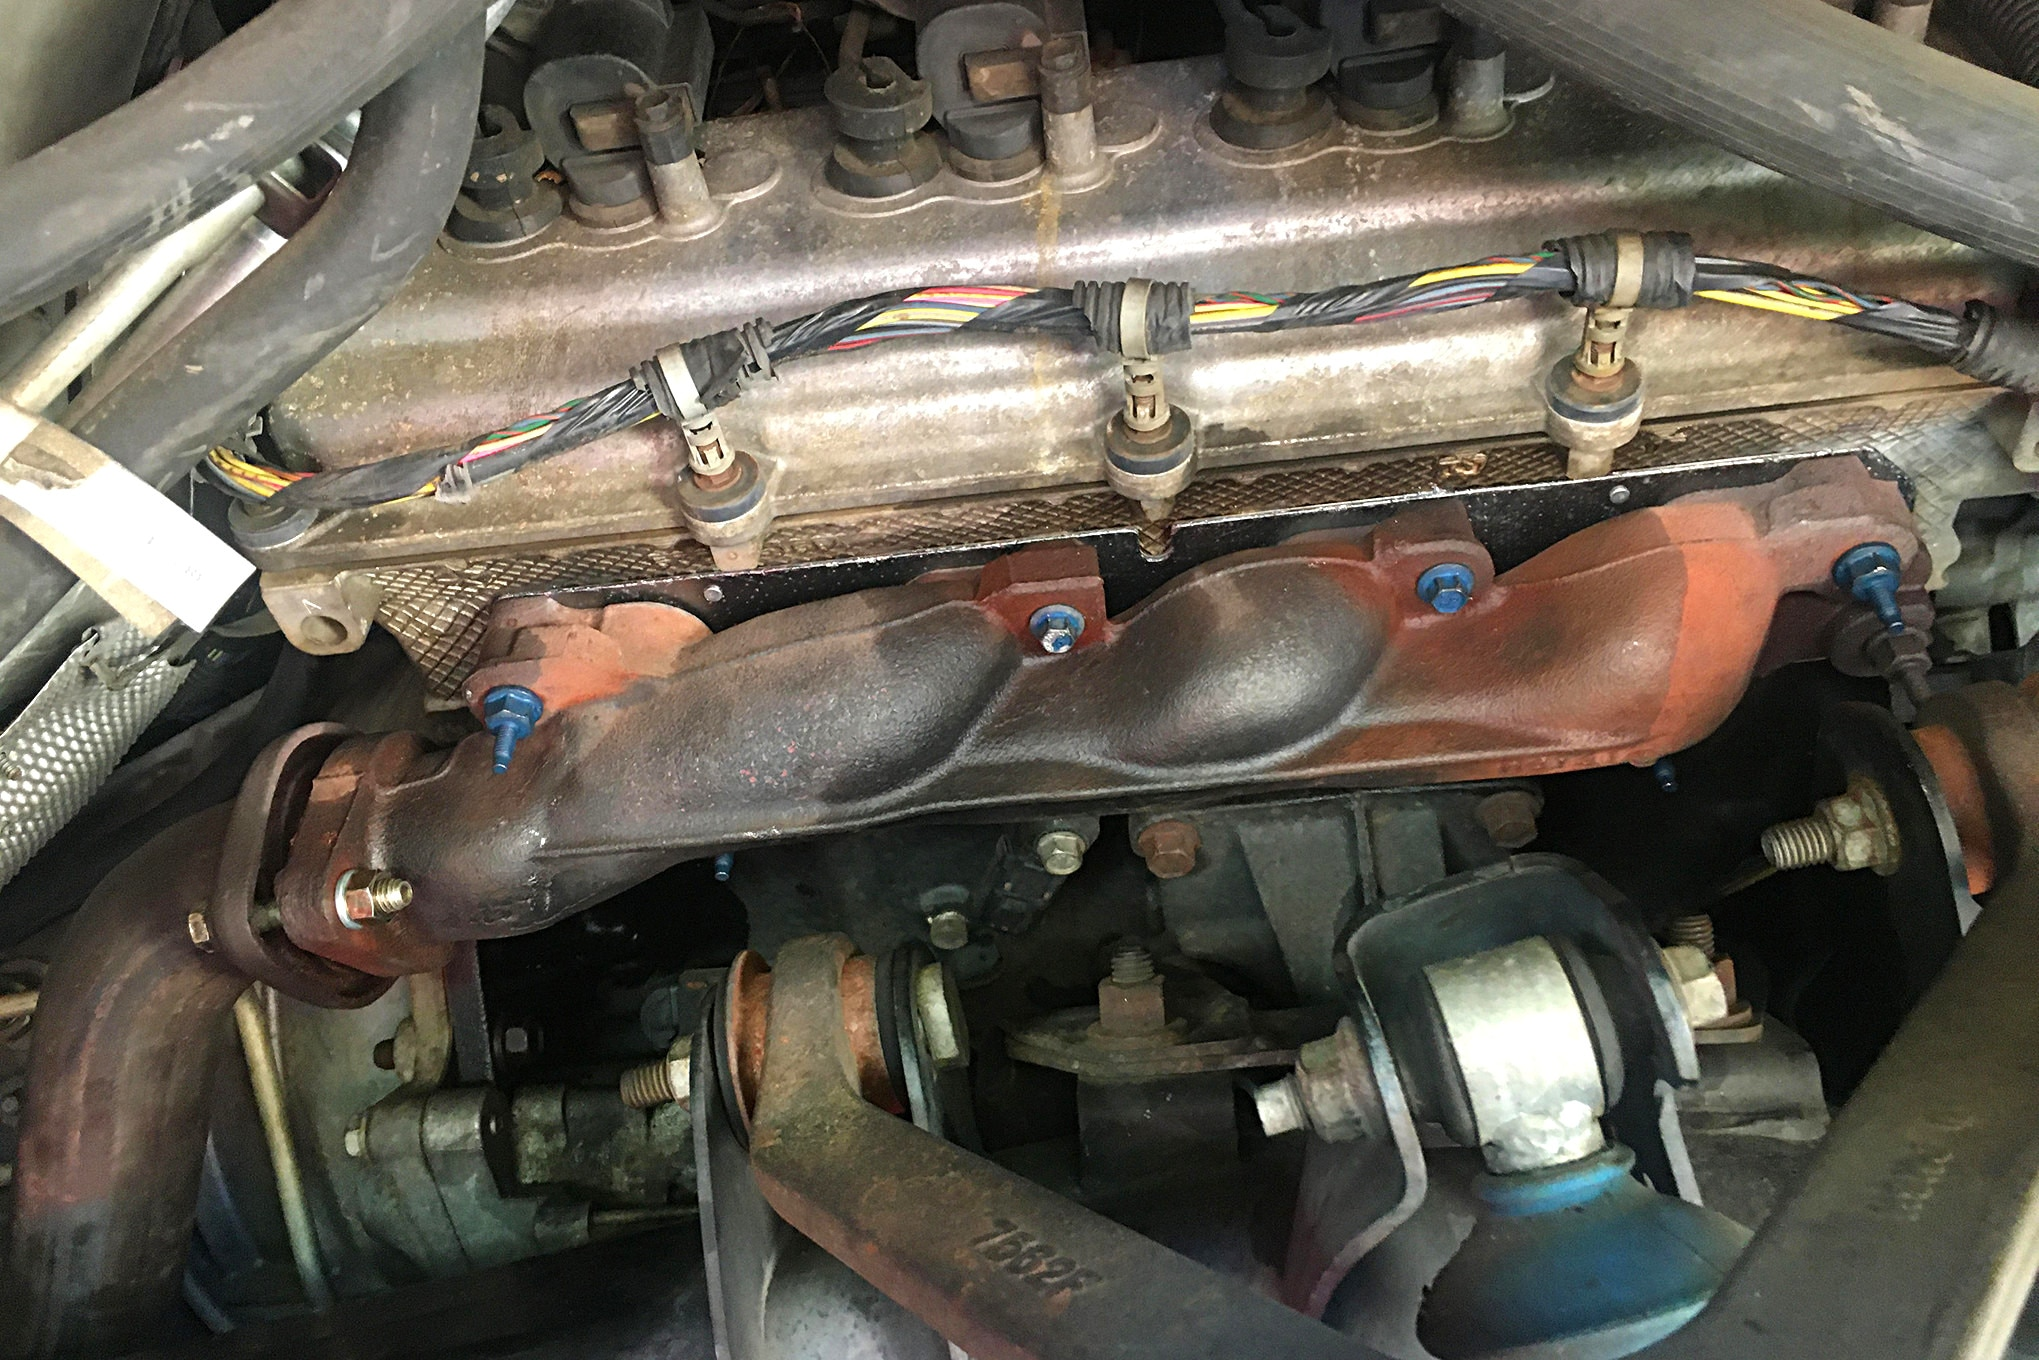 Fixing Exhaust Leak From Broken Manifold Bolts